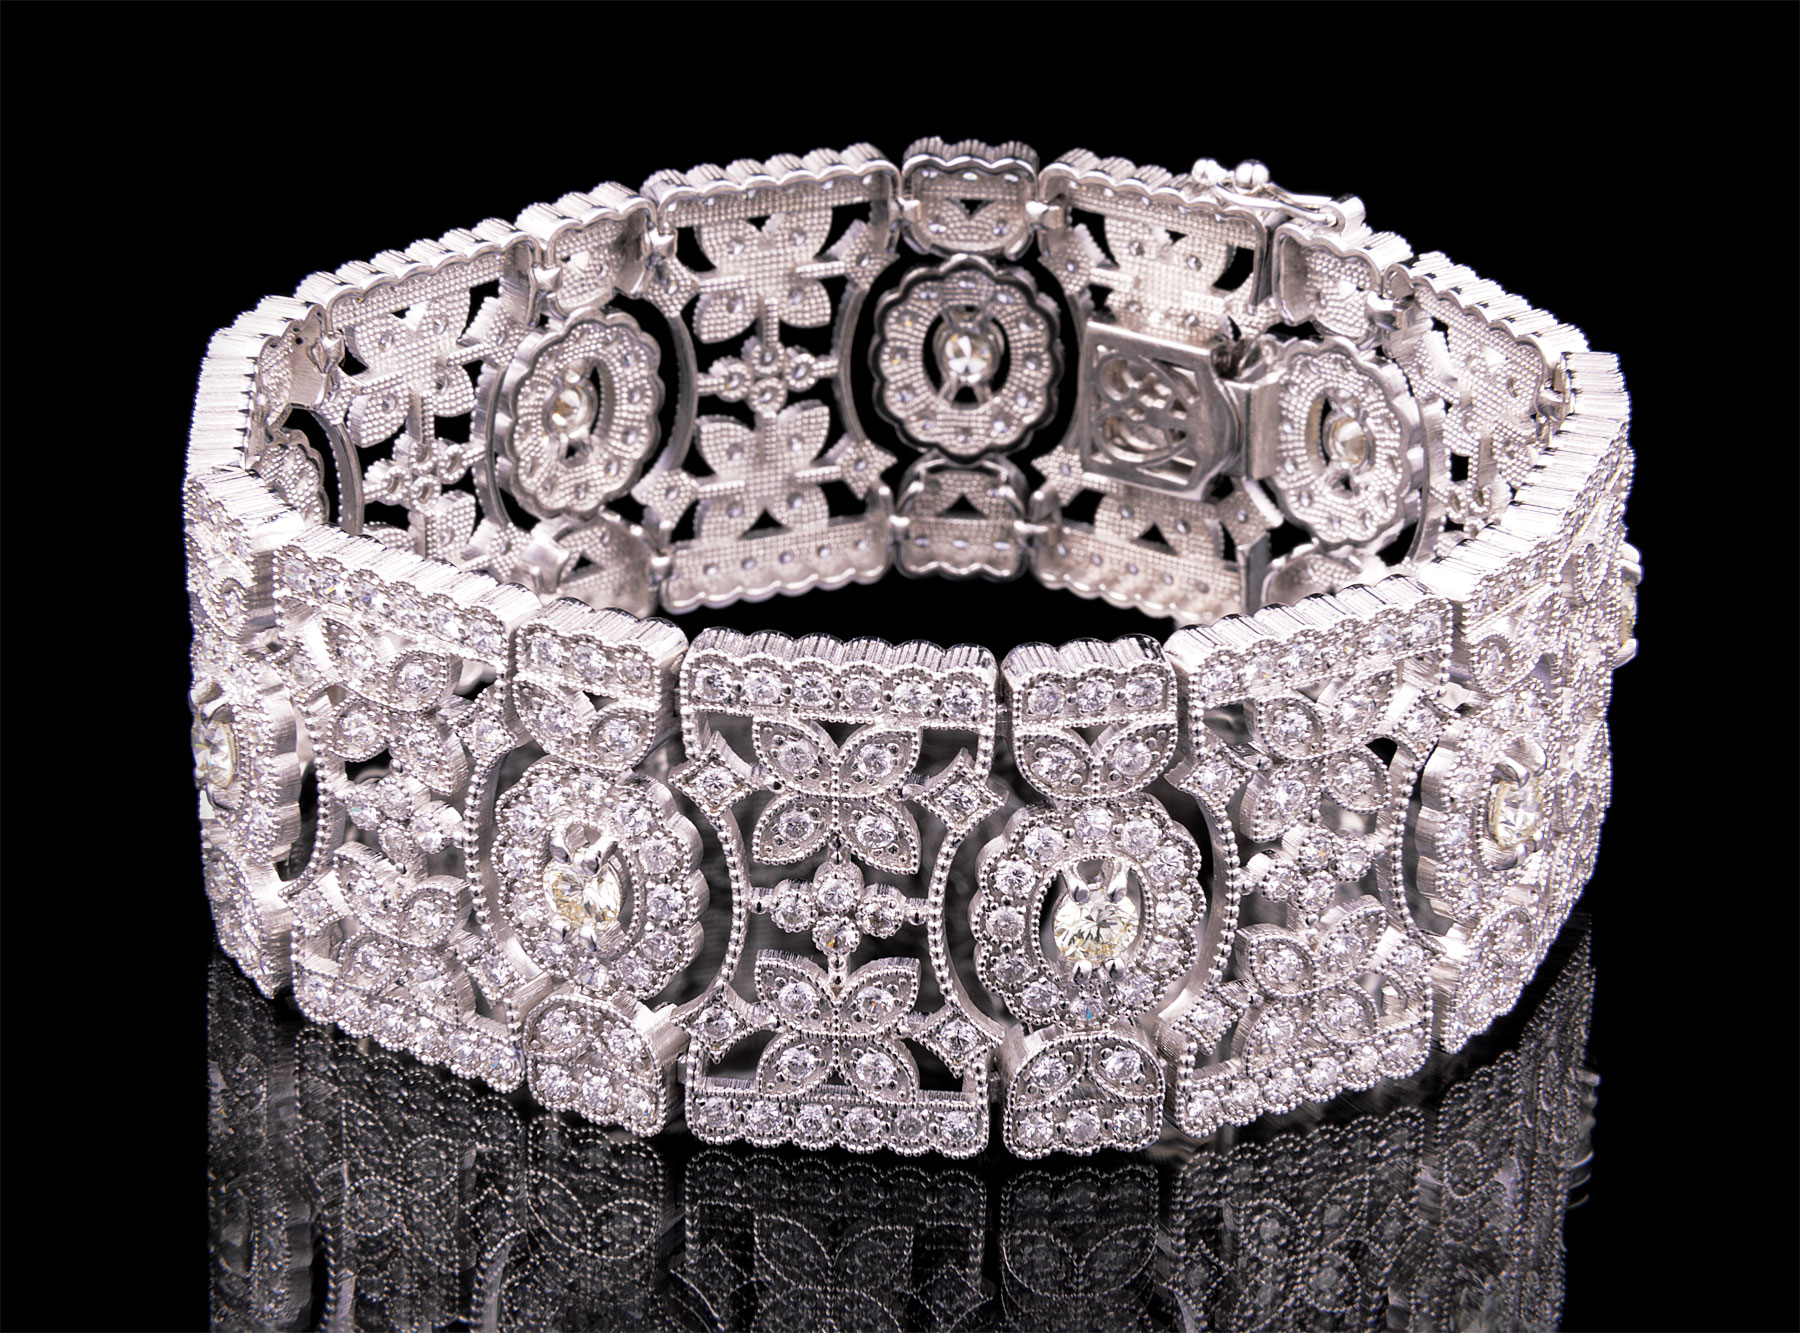 Lot 599 - 18 kt. White Gold and Diamond Bracelet , approx. 459 round brilliant cut diamonds, total wt. approx.